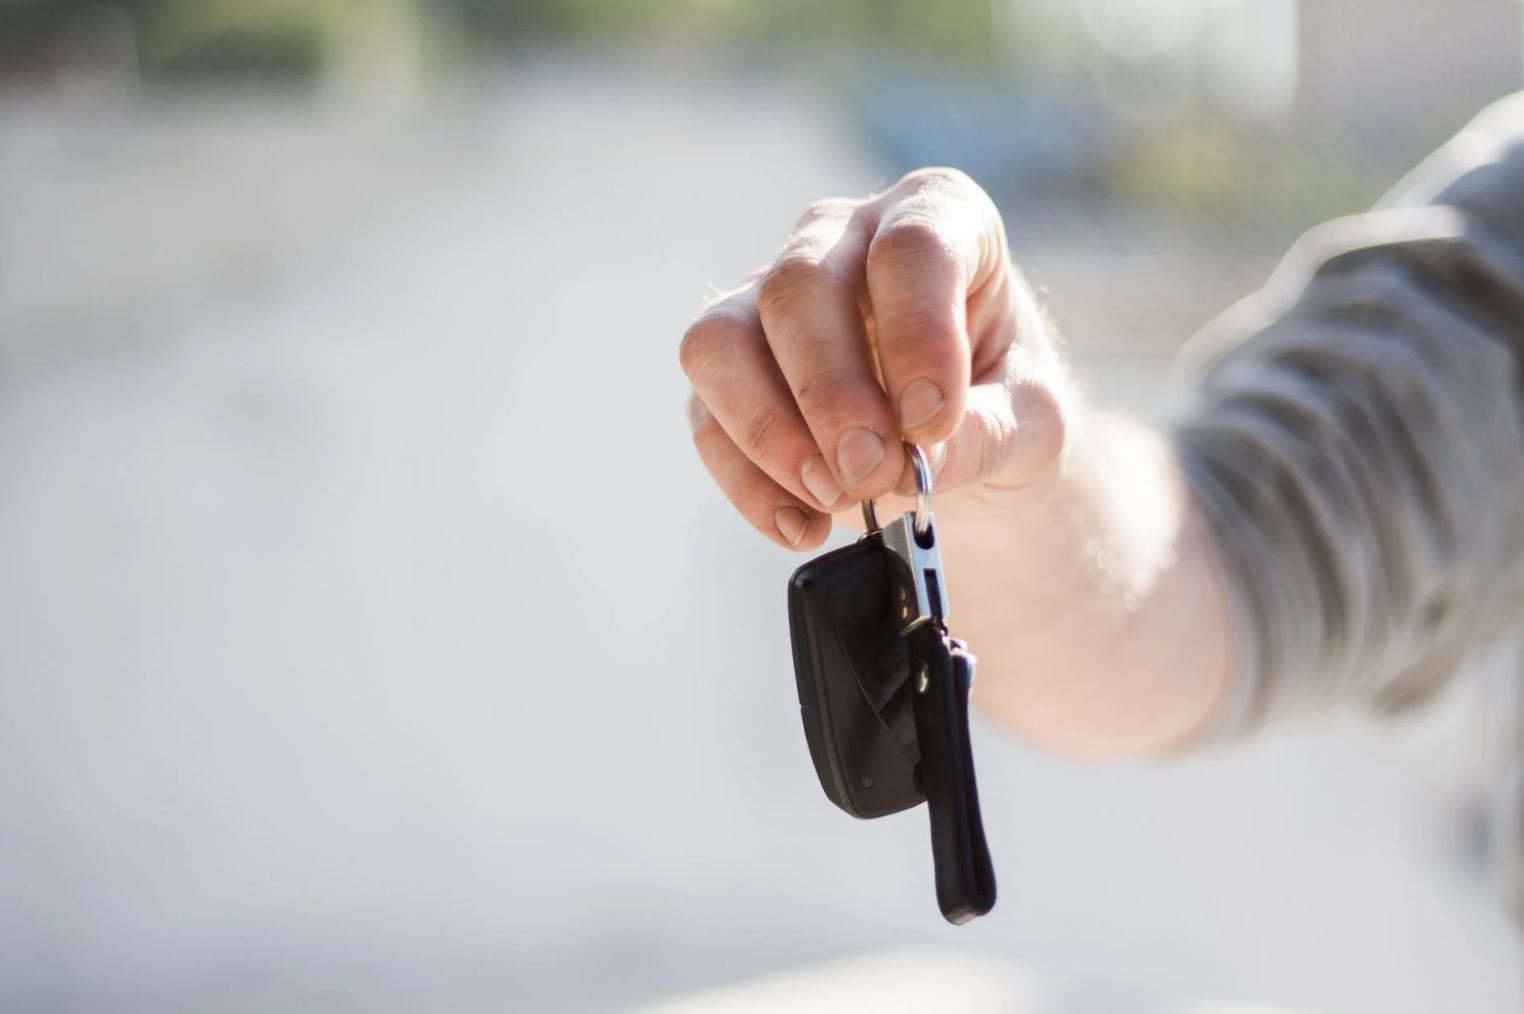 Image of a person holding car keys.